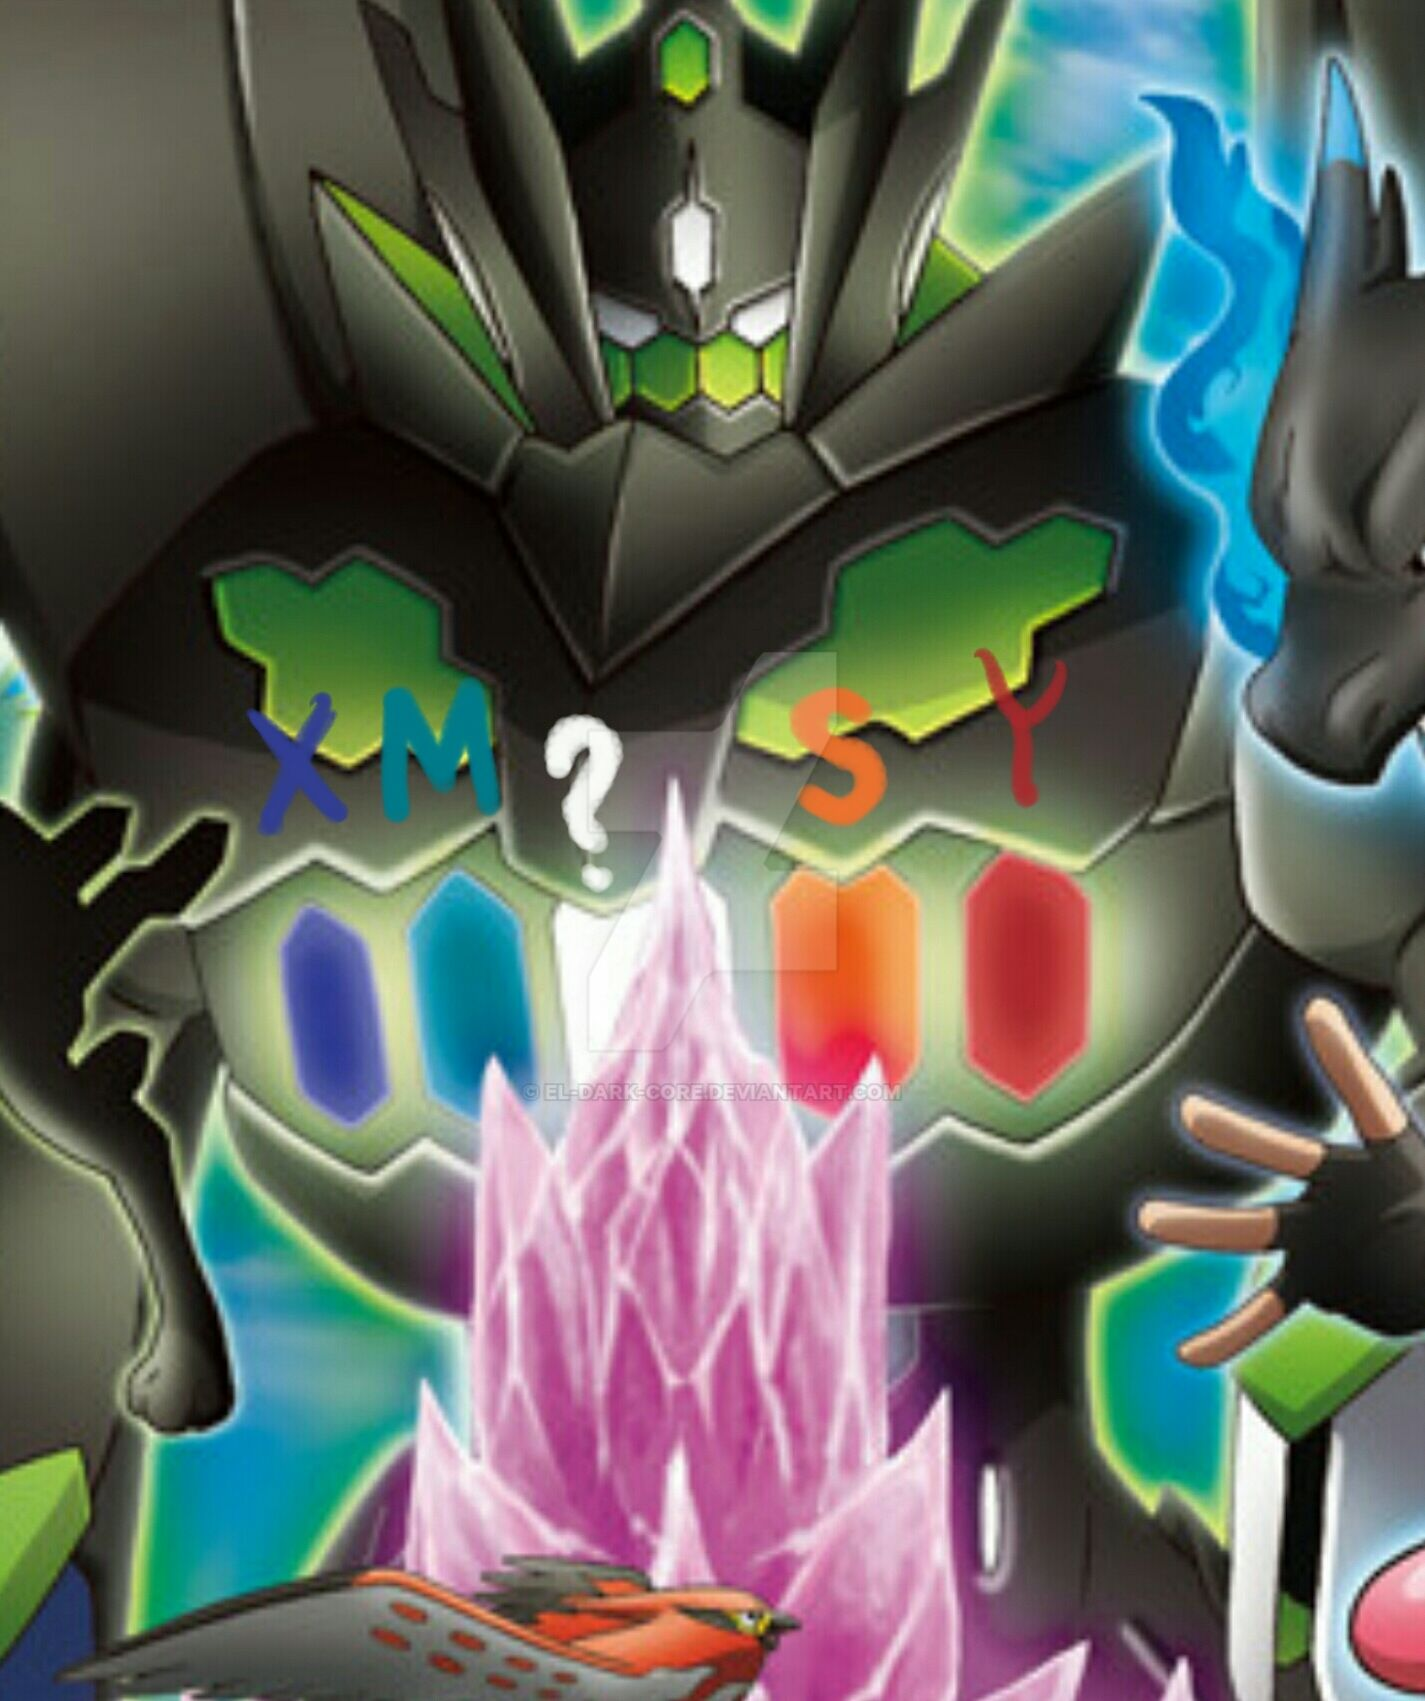 Perfect Zygarde Is The Key By El-Dark-Core On DeviantArt